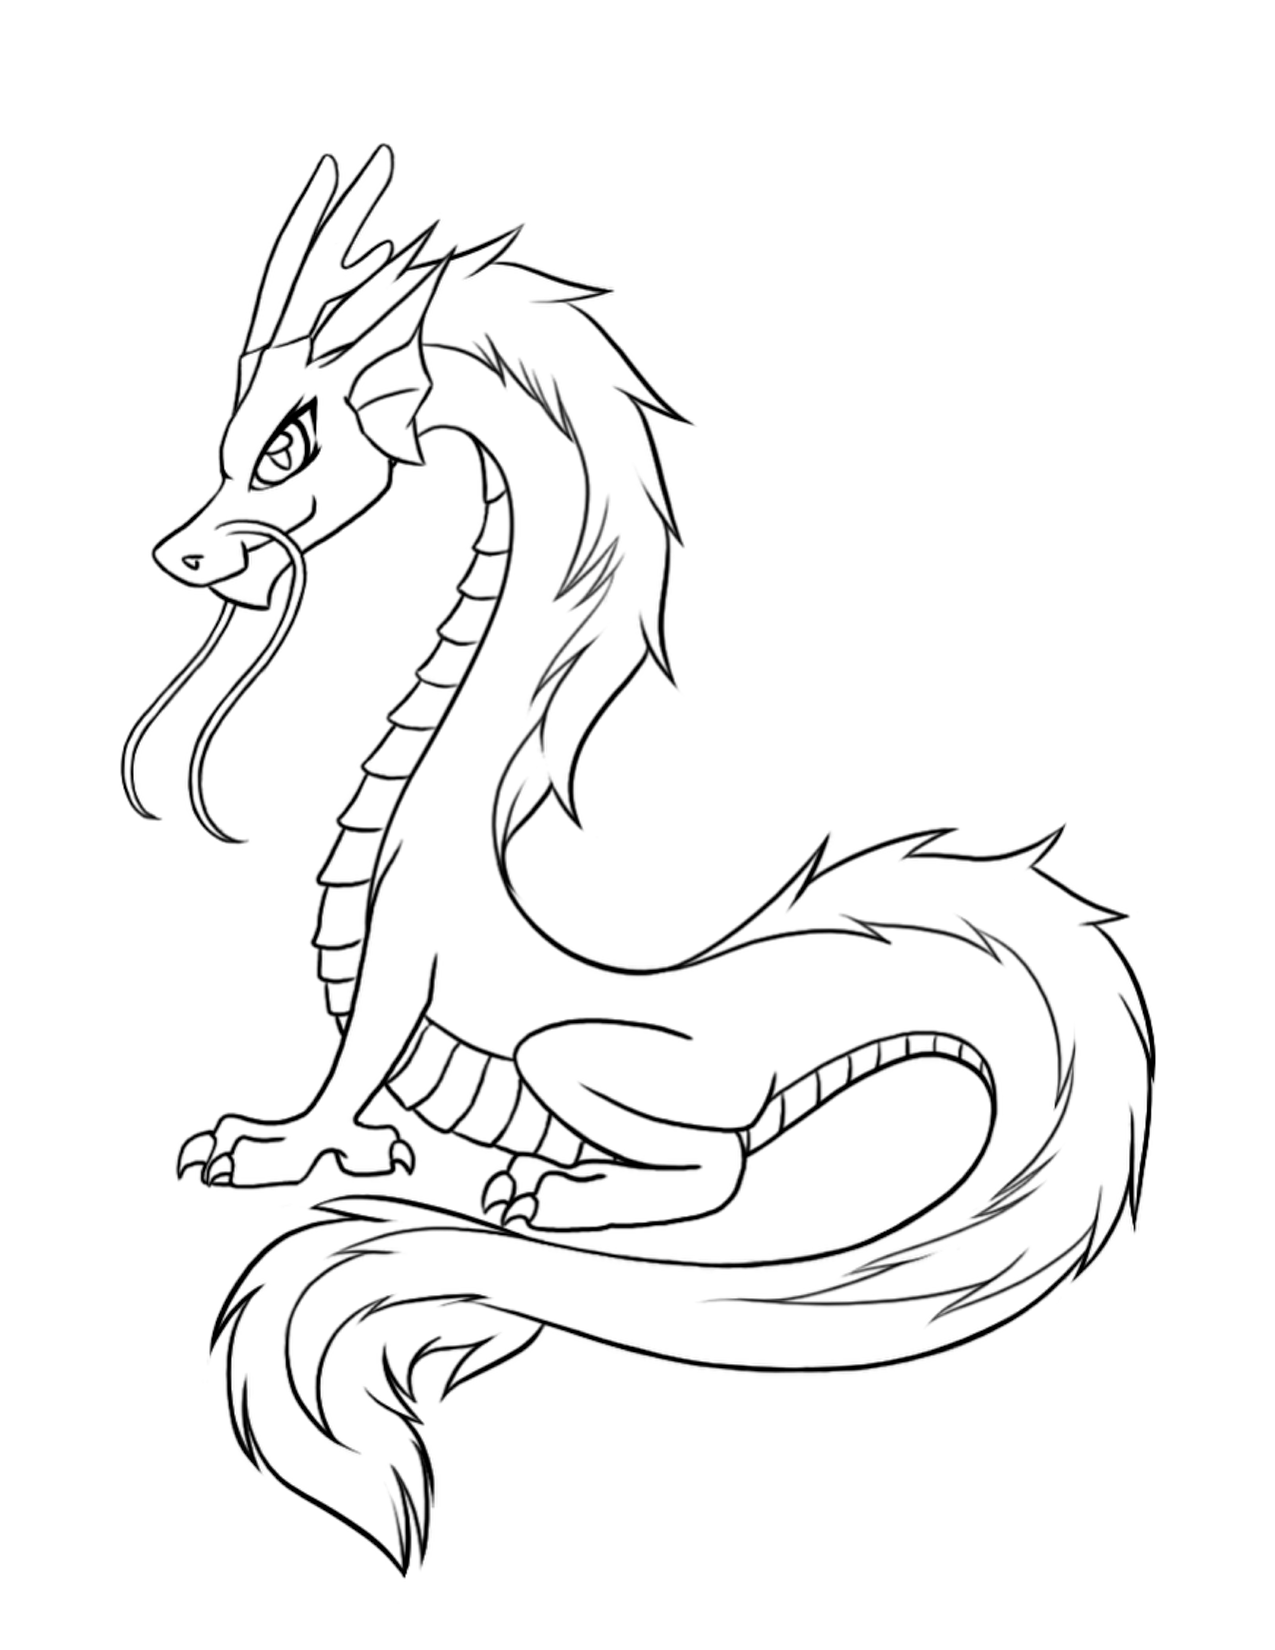 Free Printable Dragon Coloring Pages For Kids in 2018 | Dragon ...